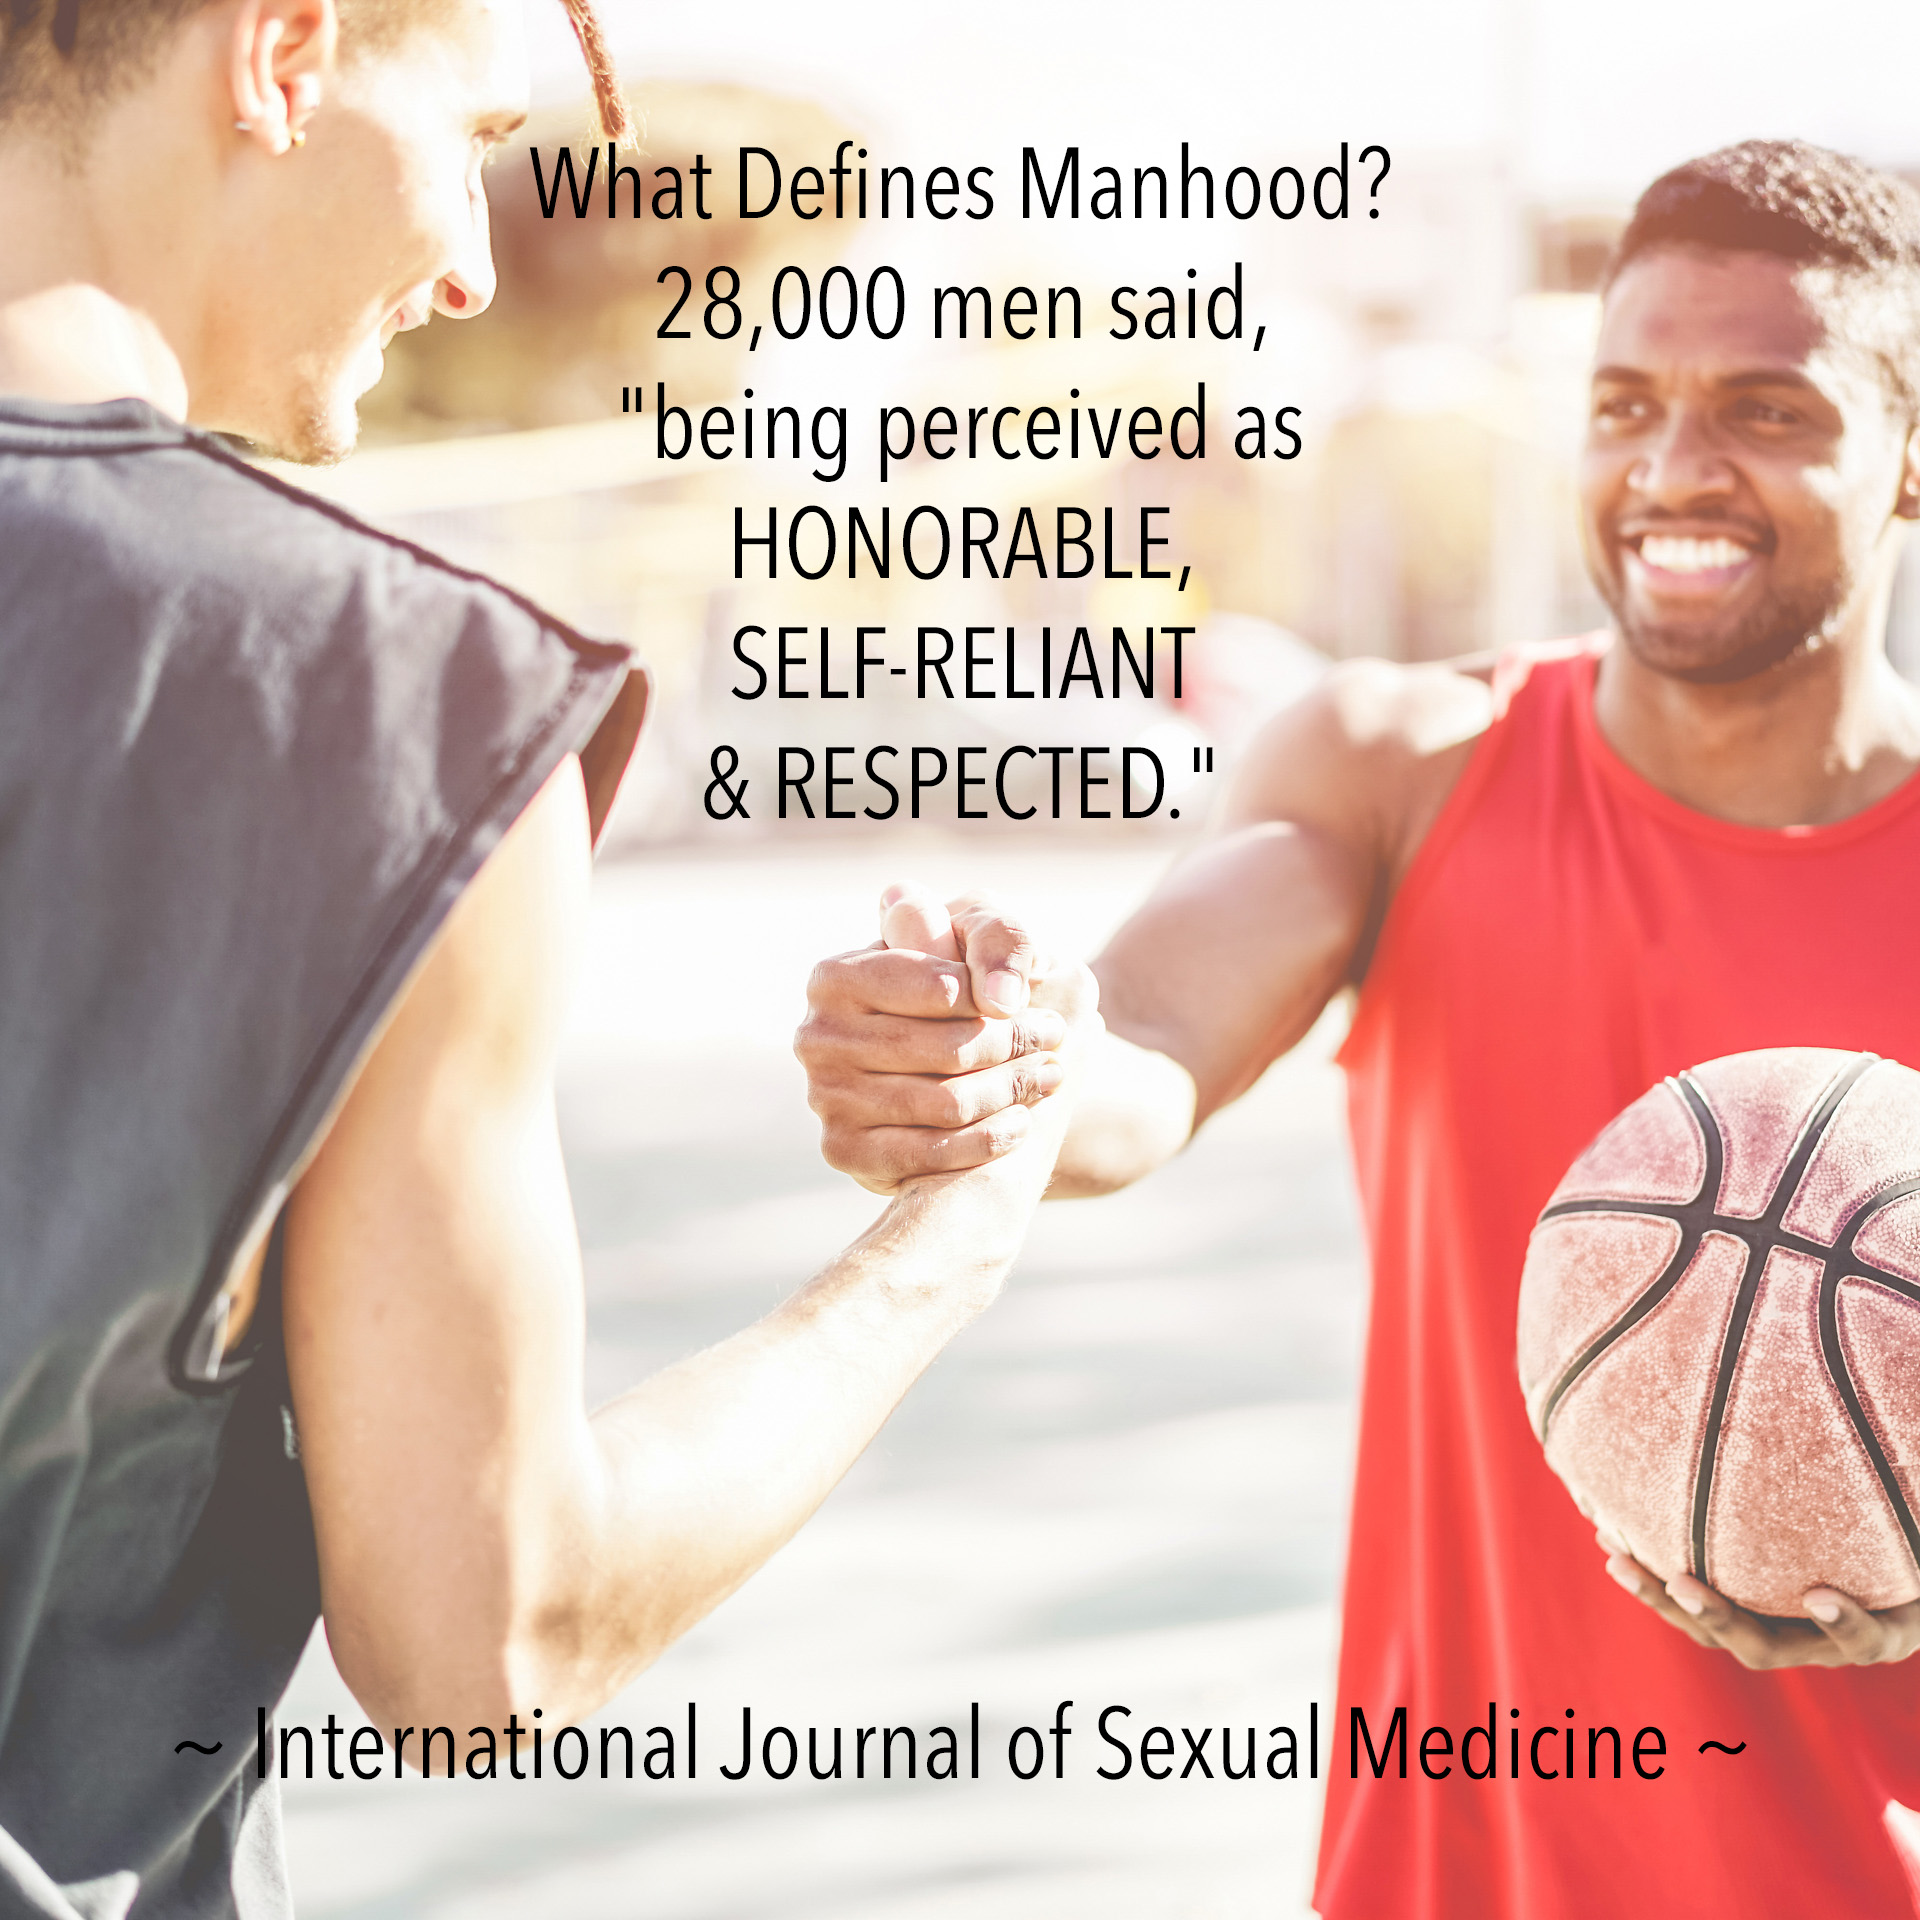 "What Defines Manhood? 28,000 men said, ""being perceived as HONORABLE, SELF-RELIANT & RESPECTED."" - International Journal of Sexual Medicine"